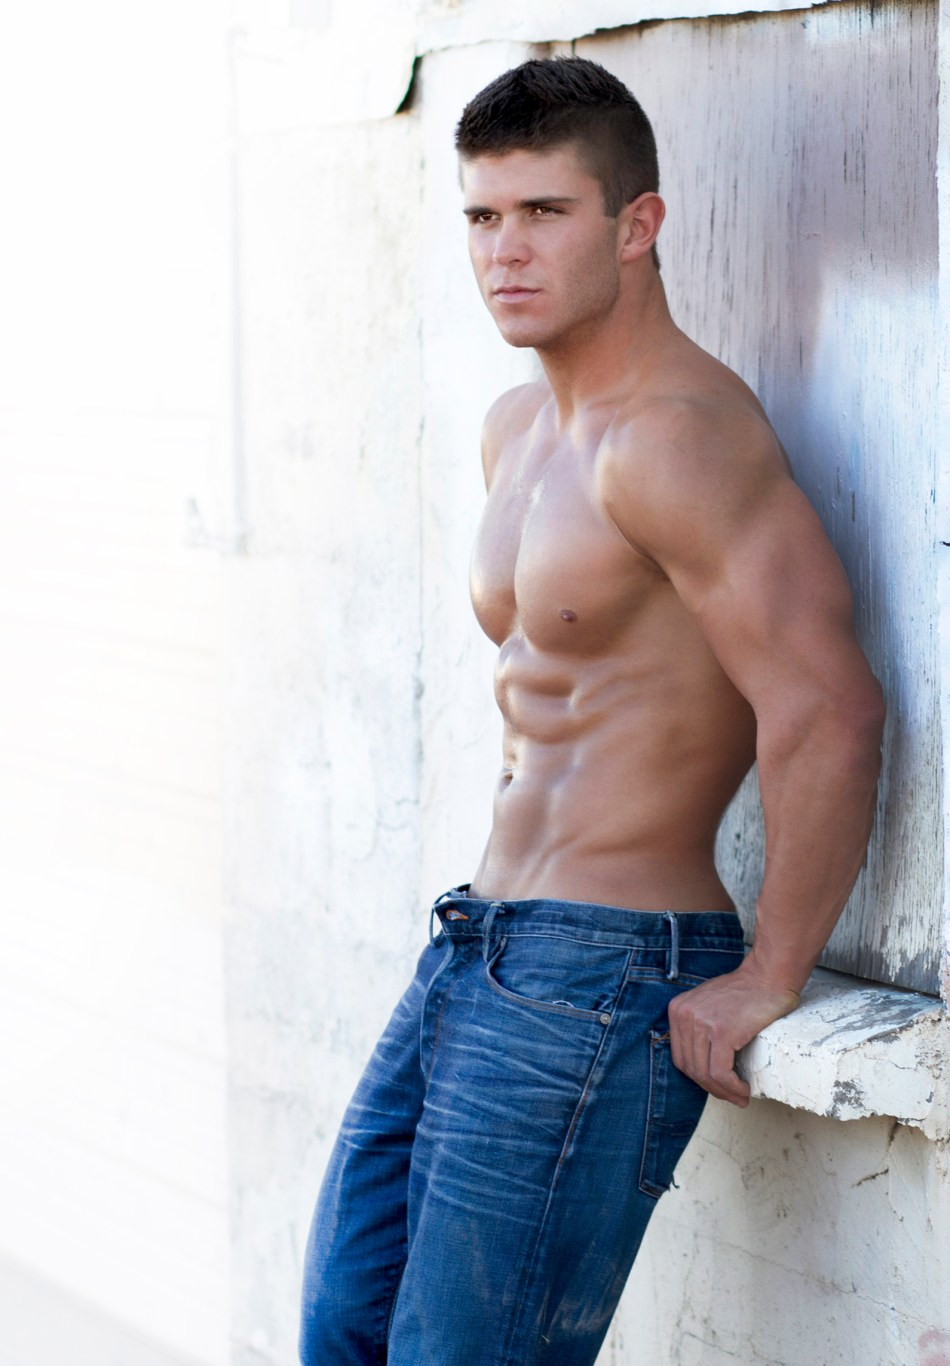 Here's something special for all you fitness model lovers – sexy hunk Shane Smith by Rob Kristian in some previously unreleased images. As they both reside in Phoenix, Arizona, photographer Rob Kristian has photographed Shane some five times. The pictorial below shows photos over the years from various shoots.